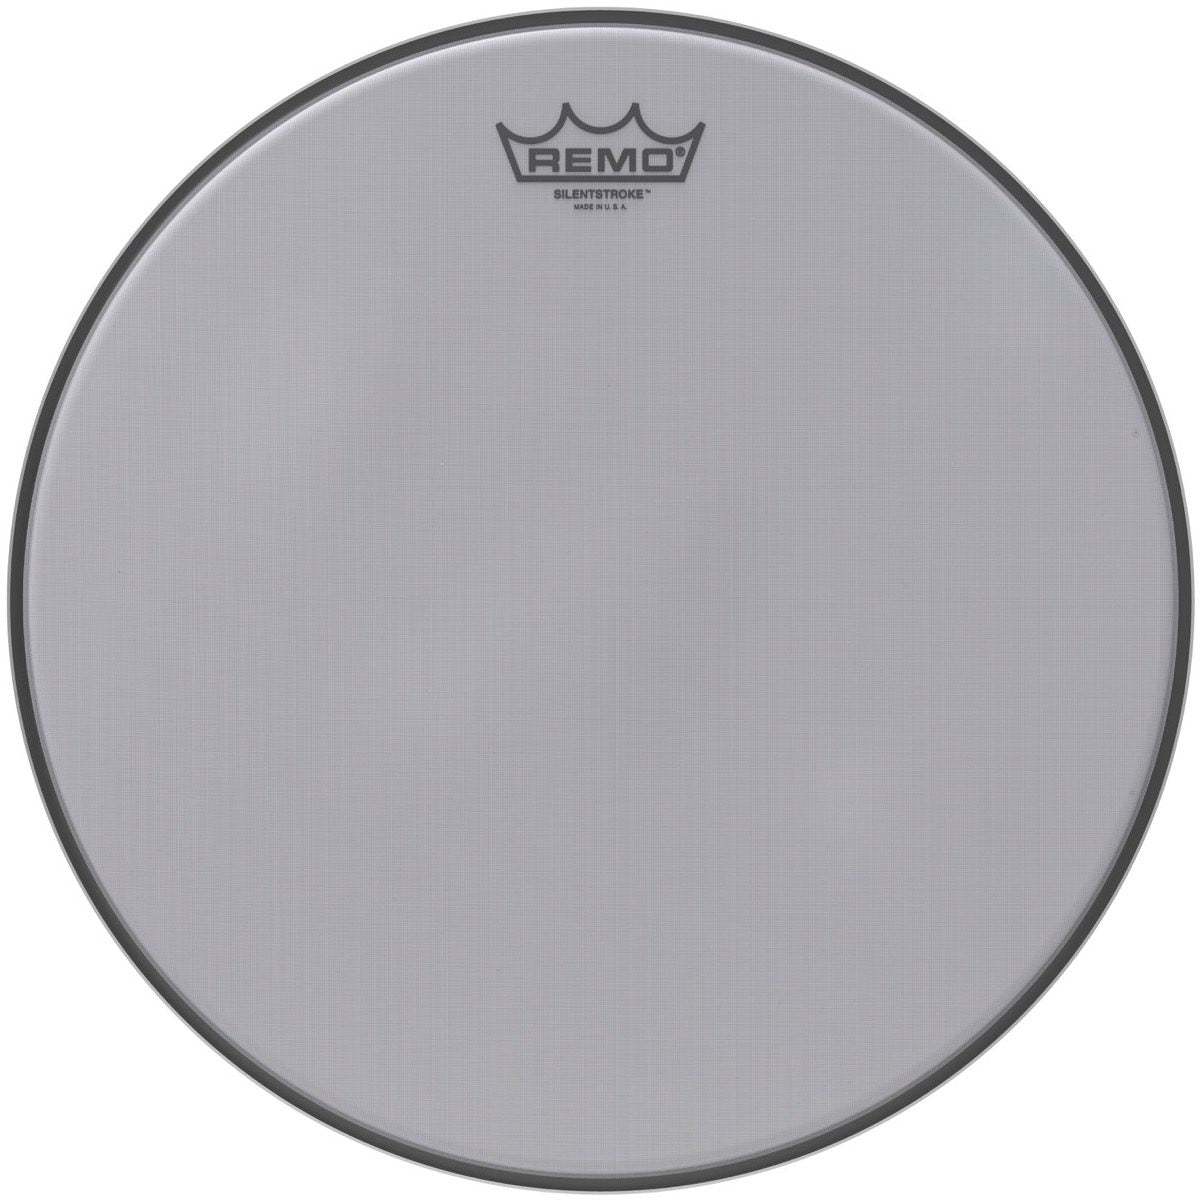 Remo Silentstroke White Mesh Drumhead, 14 Inch